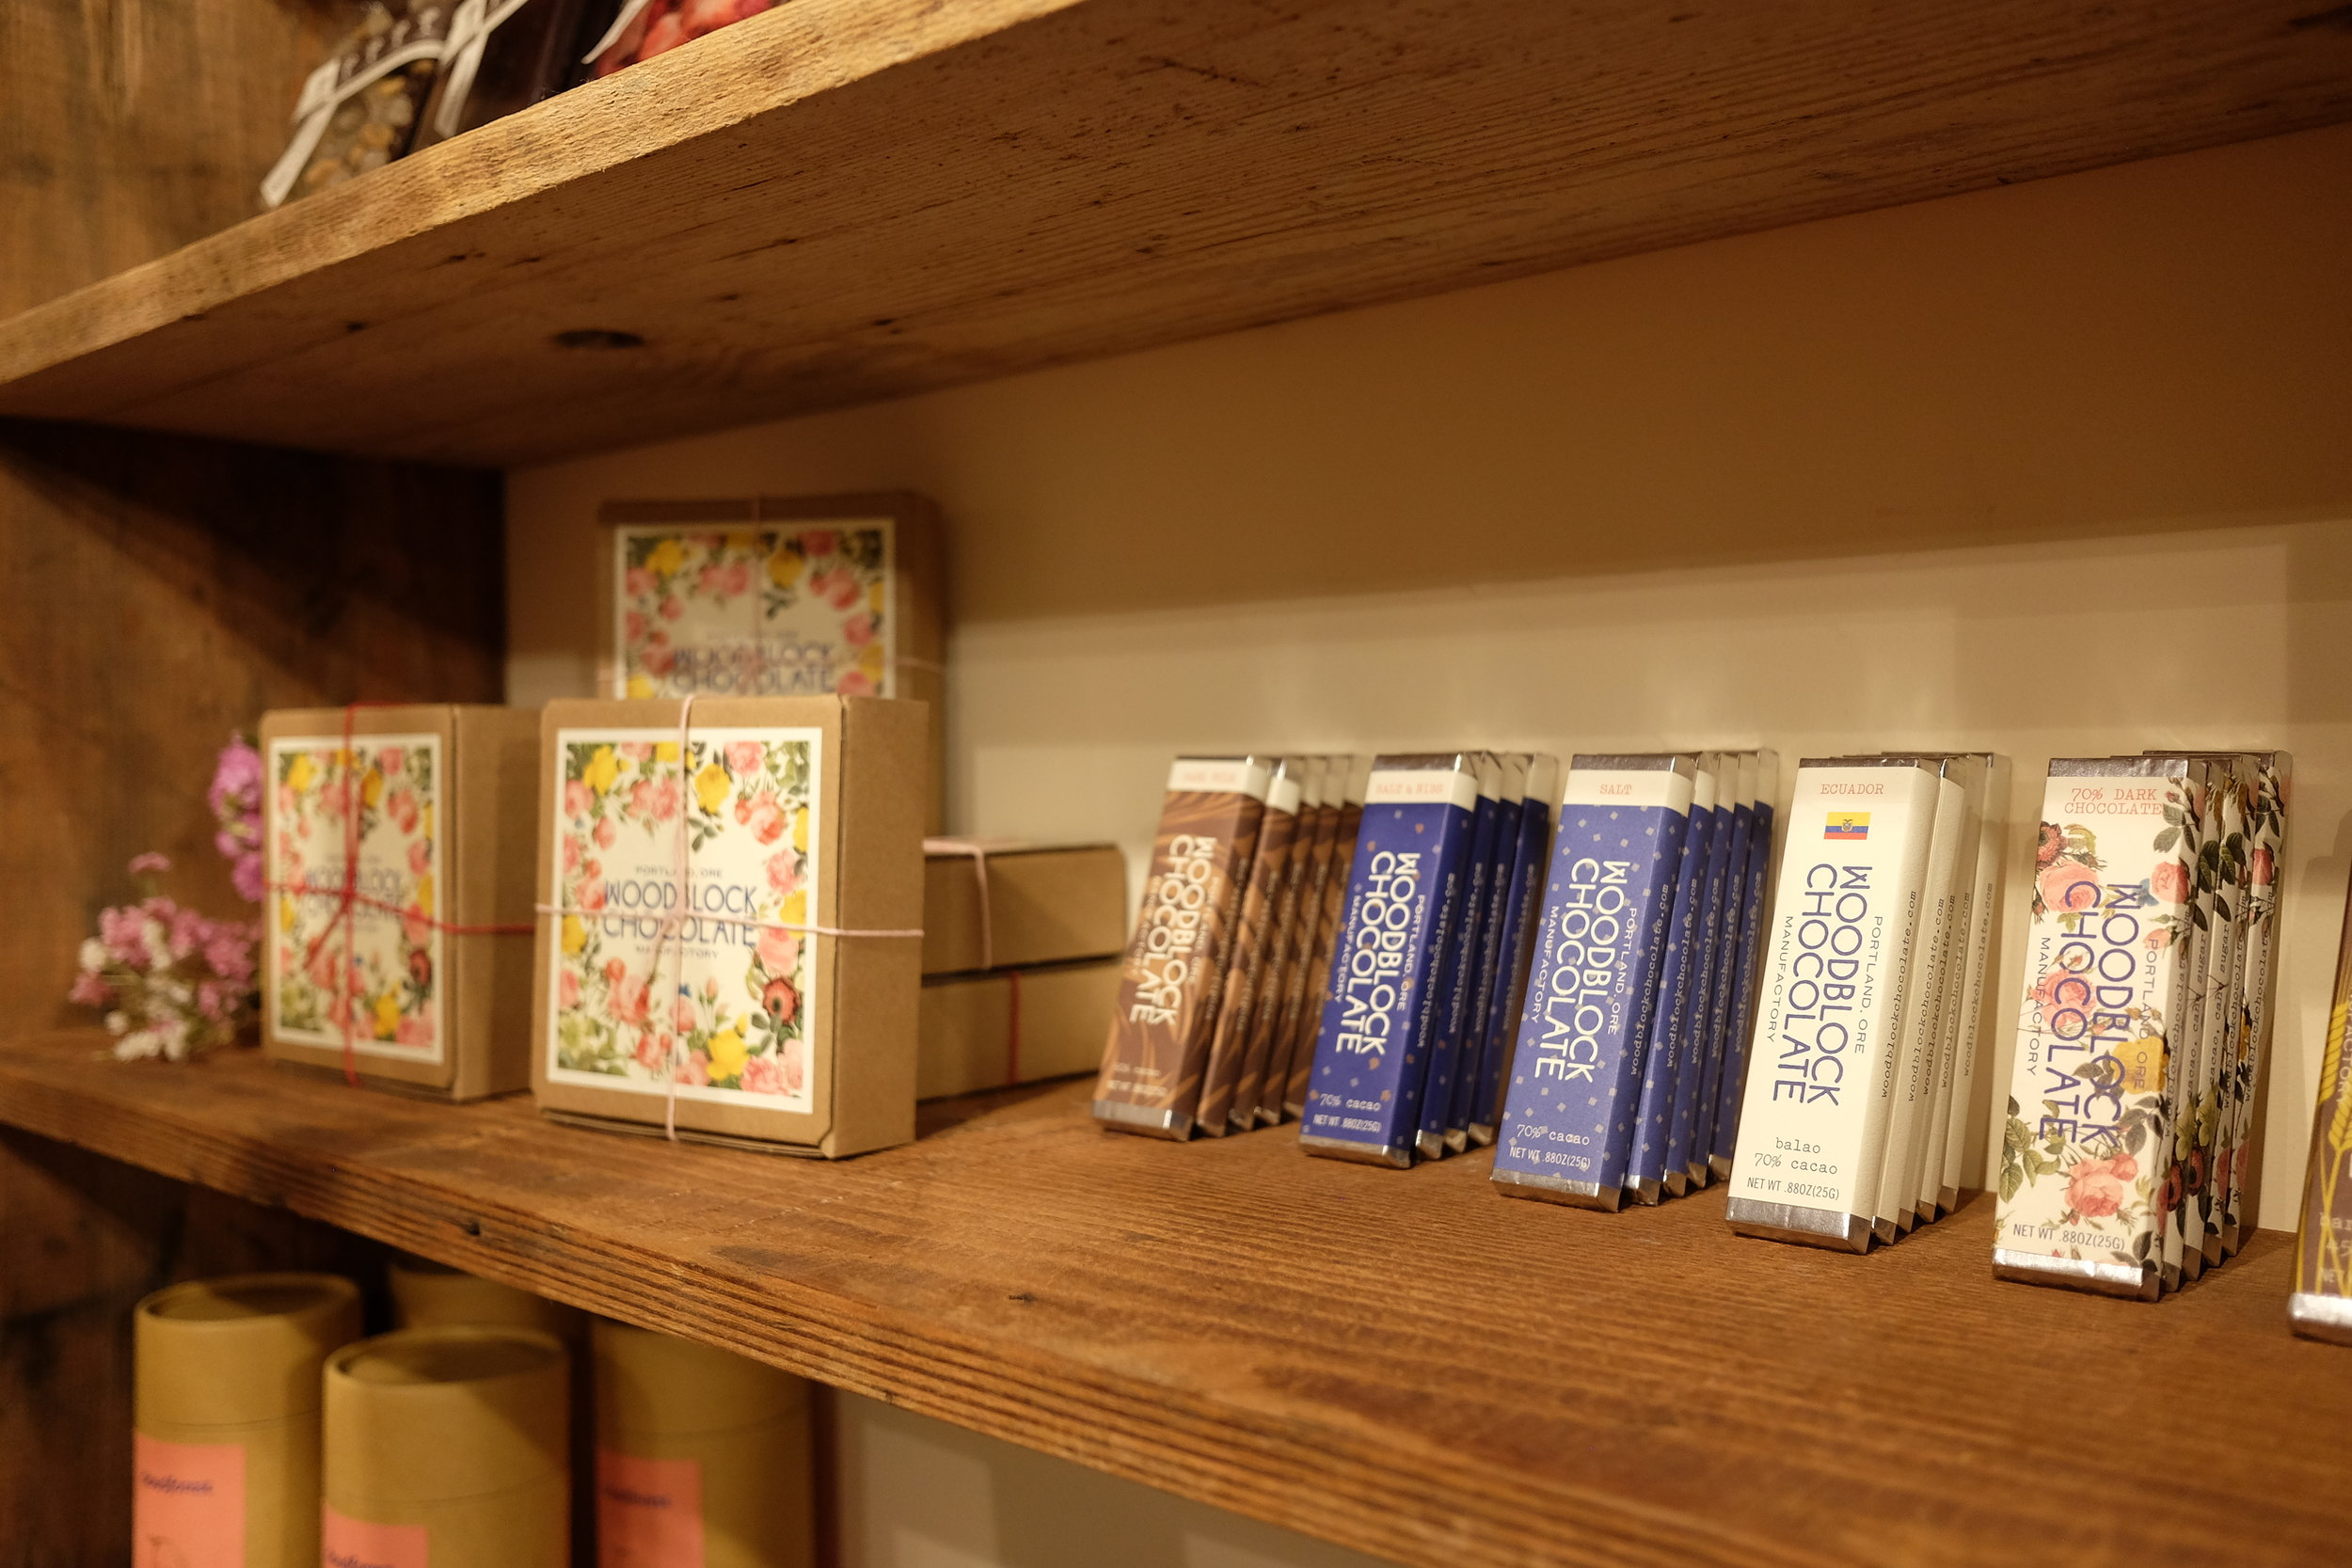 The Meadow_ルミネ新宿_WOODBLOCK CHOCOLATE